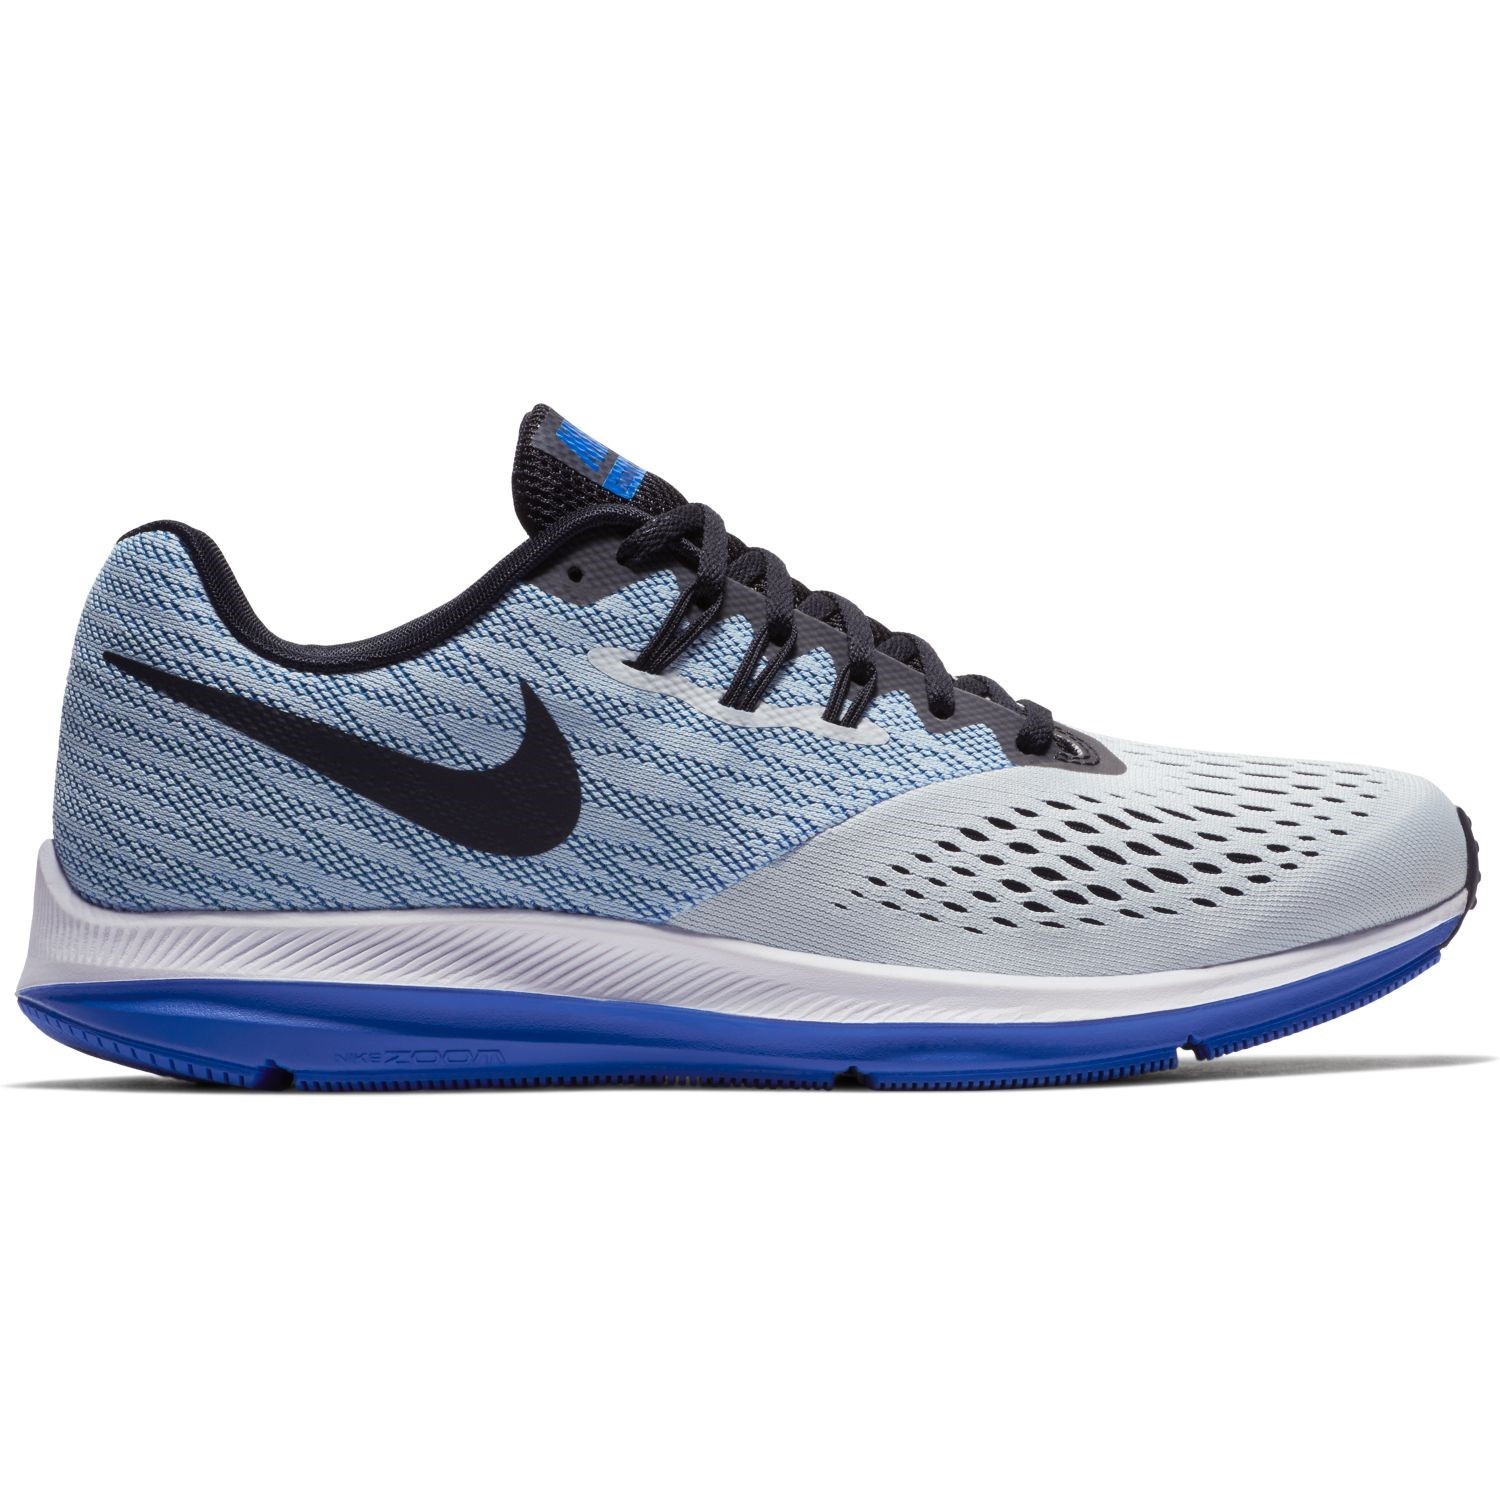 2e7a89f260a02 Nike Zoom Winflo 4 - Mens Running Shoes - Pure Platinum Black Hyper Royal